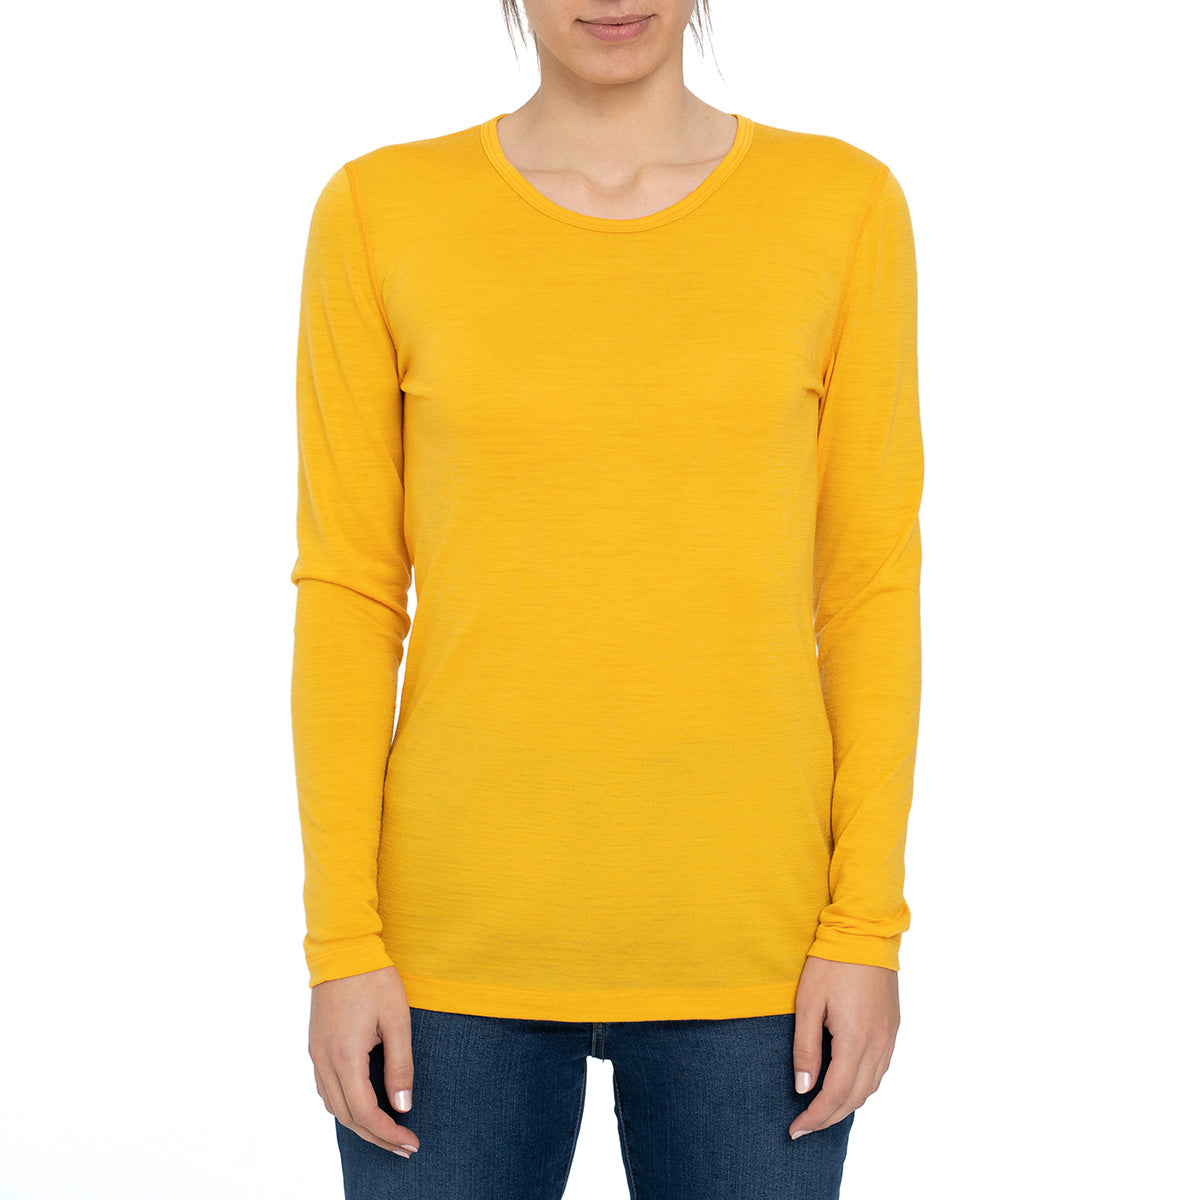 menique Women's Merino 160 Long Sleeve Crew Power Mango Color